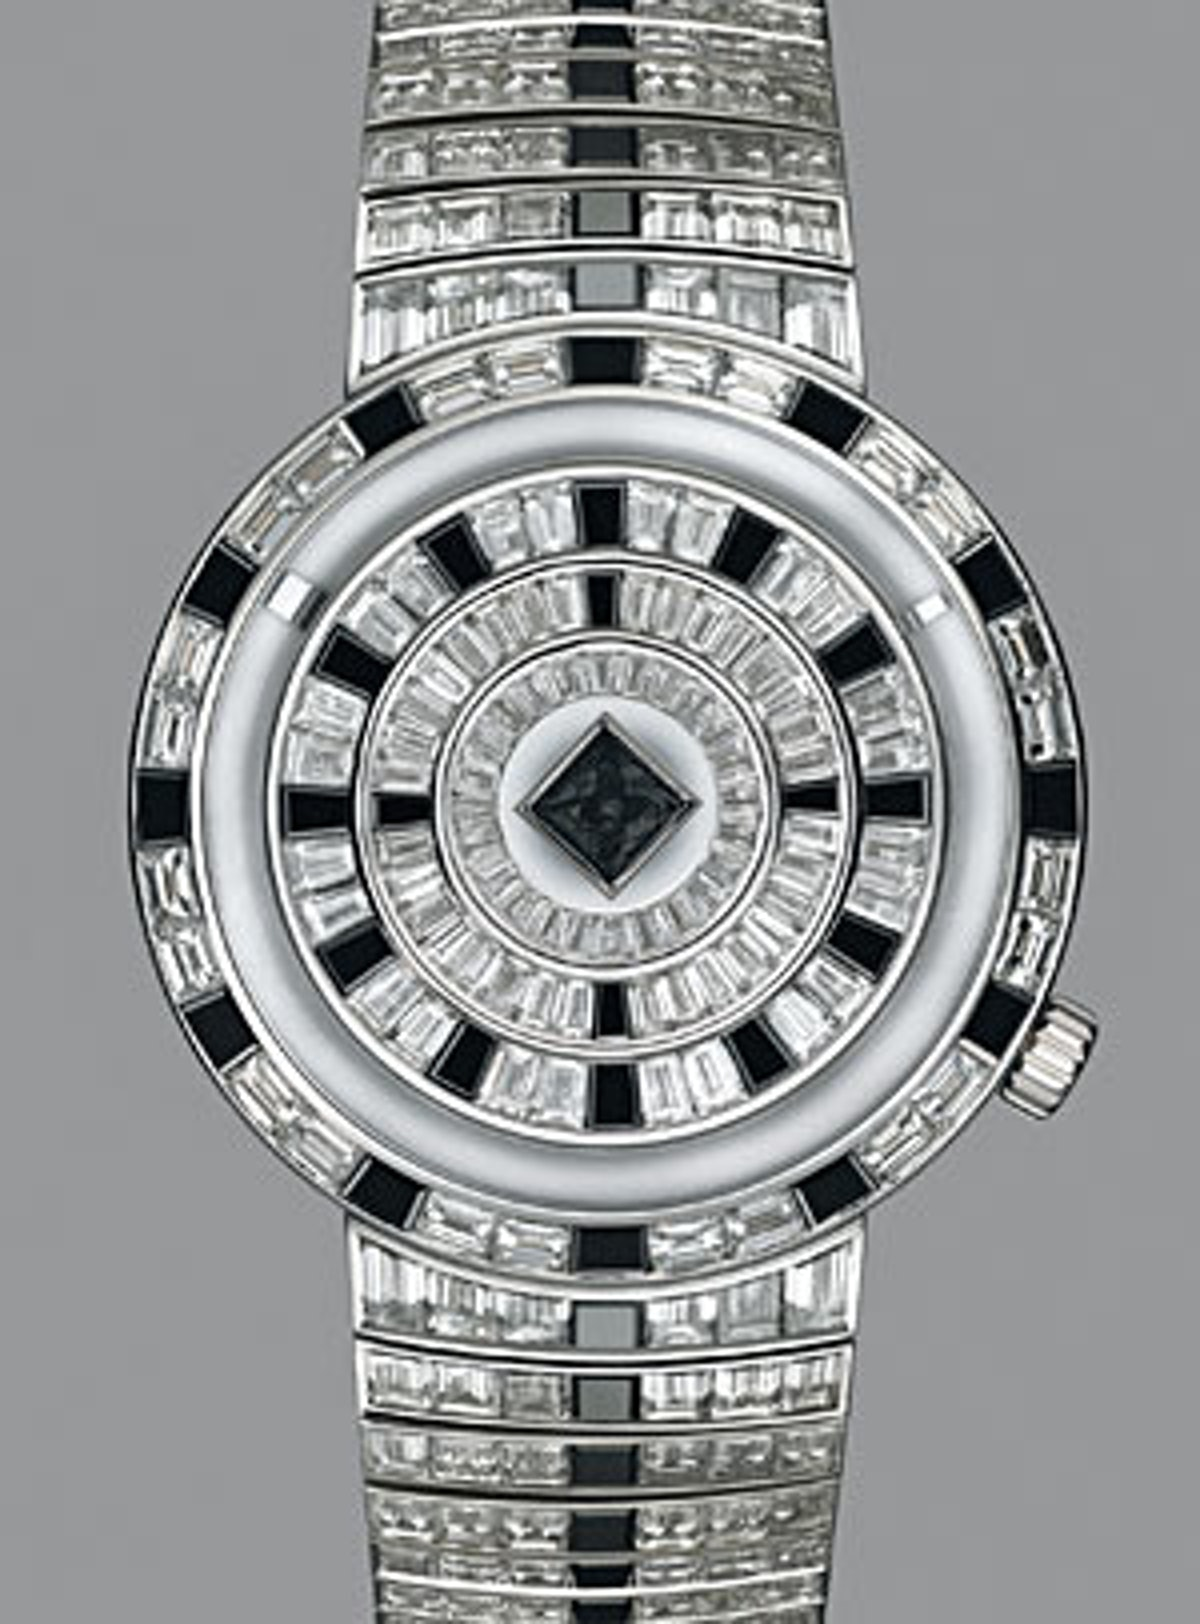 acss_sparkly_watches_01_v.jpg